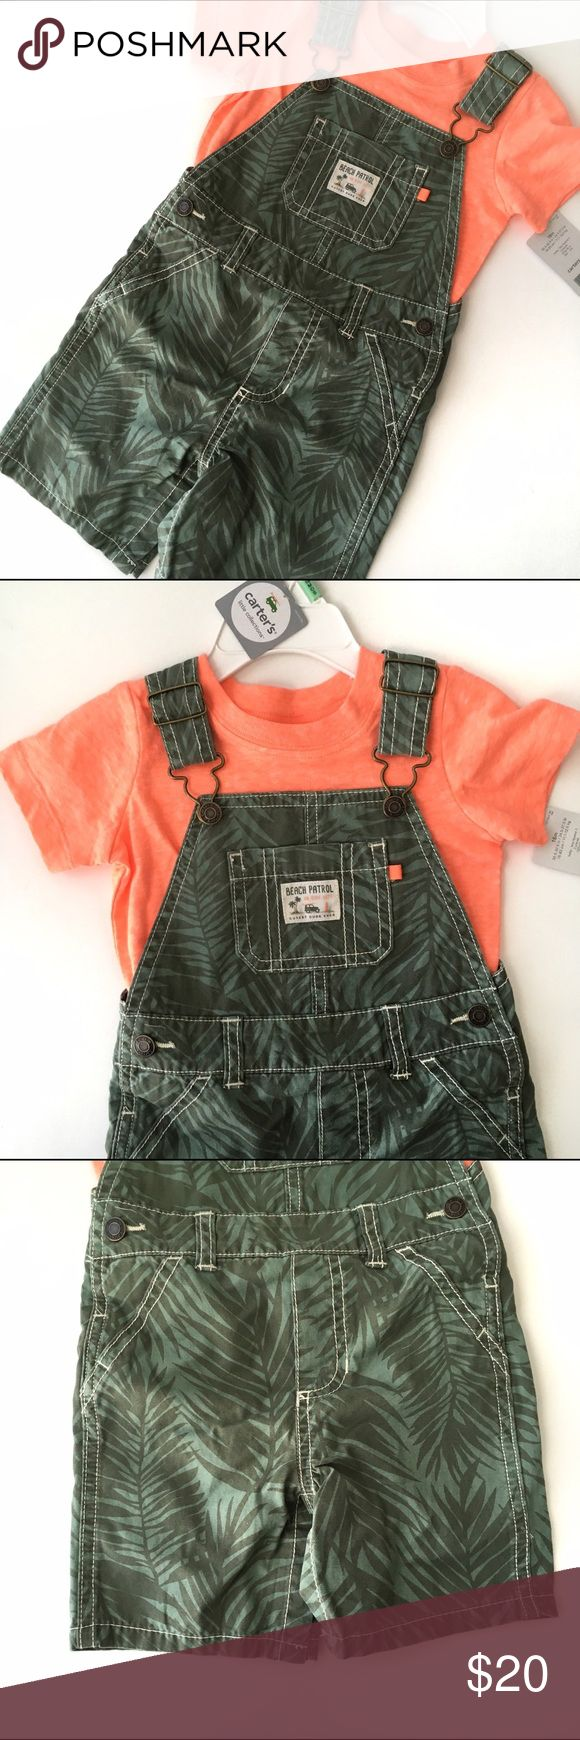 NWT Carter's Overall Tee Set NWT Carter's Boys overalls with a palm tree pattern, lightweight material with bright orange tee shirt. Matching Sets